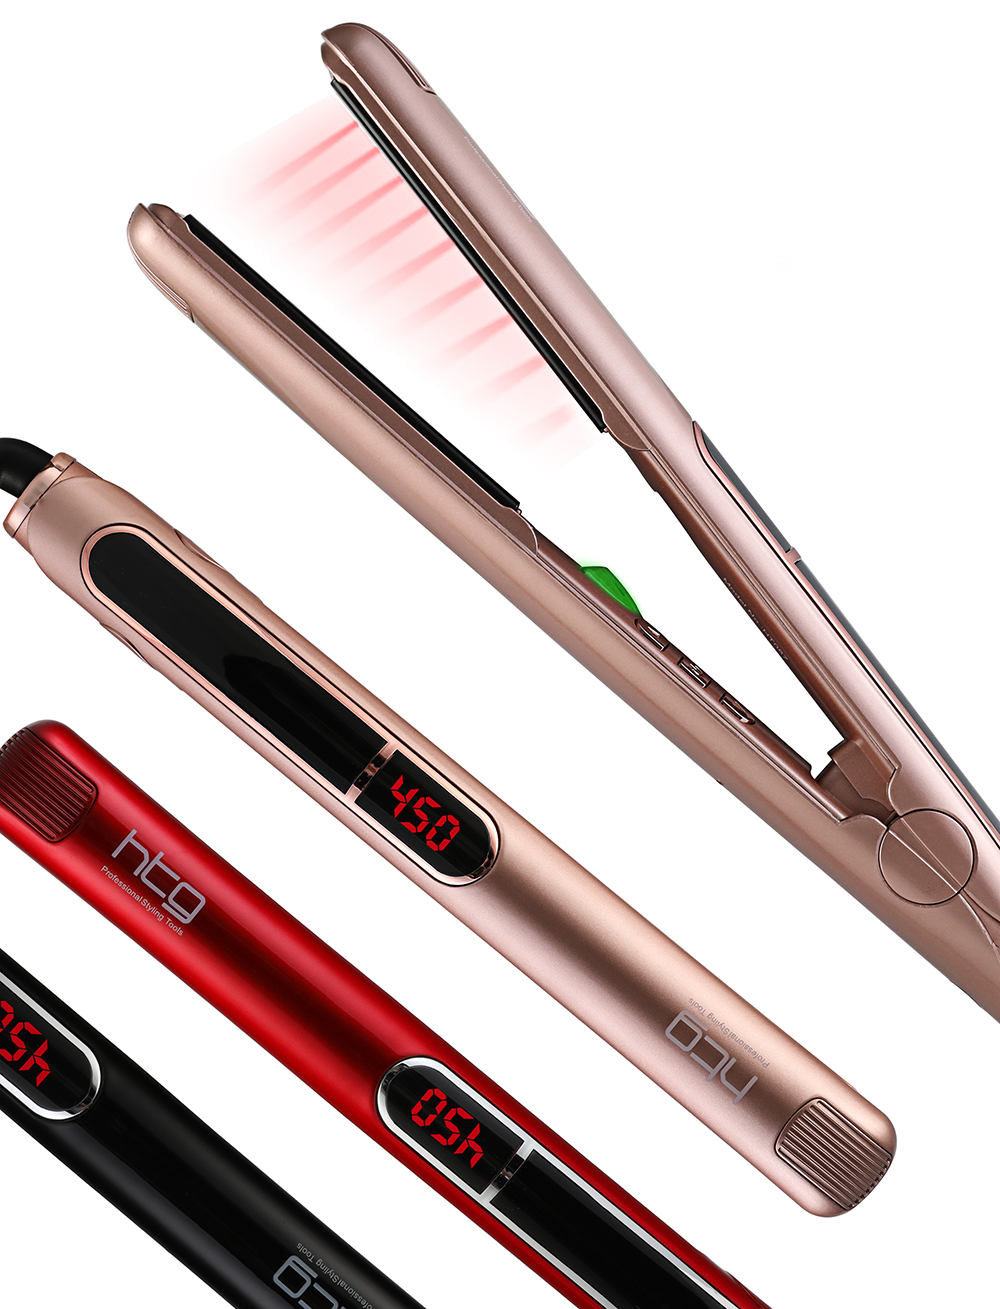 htg-professional-hair-straightener-hair-flat-iron-negative-ion-infrared-hair-straightener-hair-straighting-iron-lcd-display